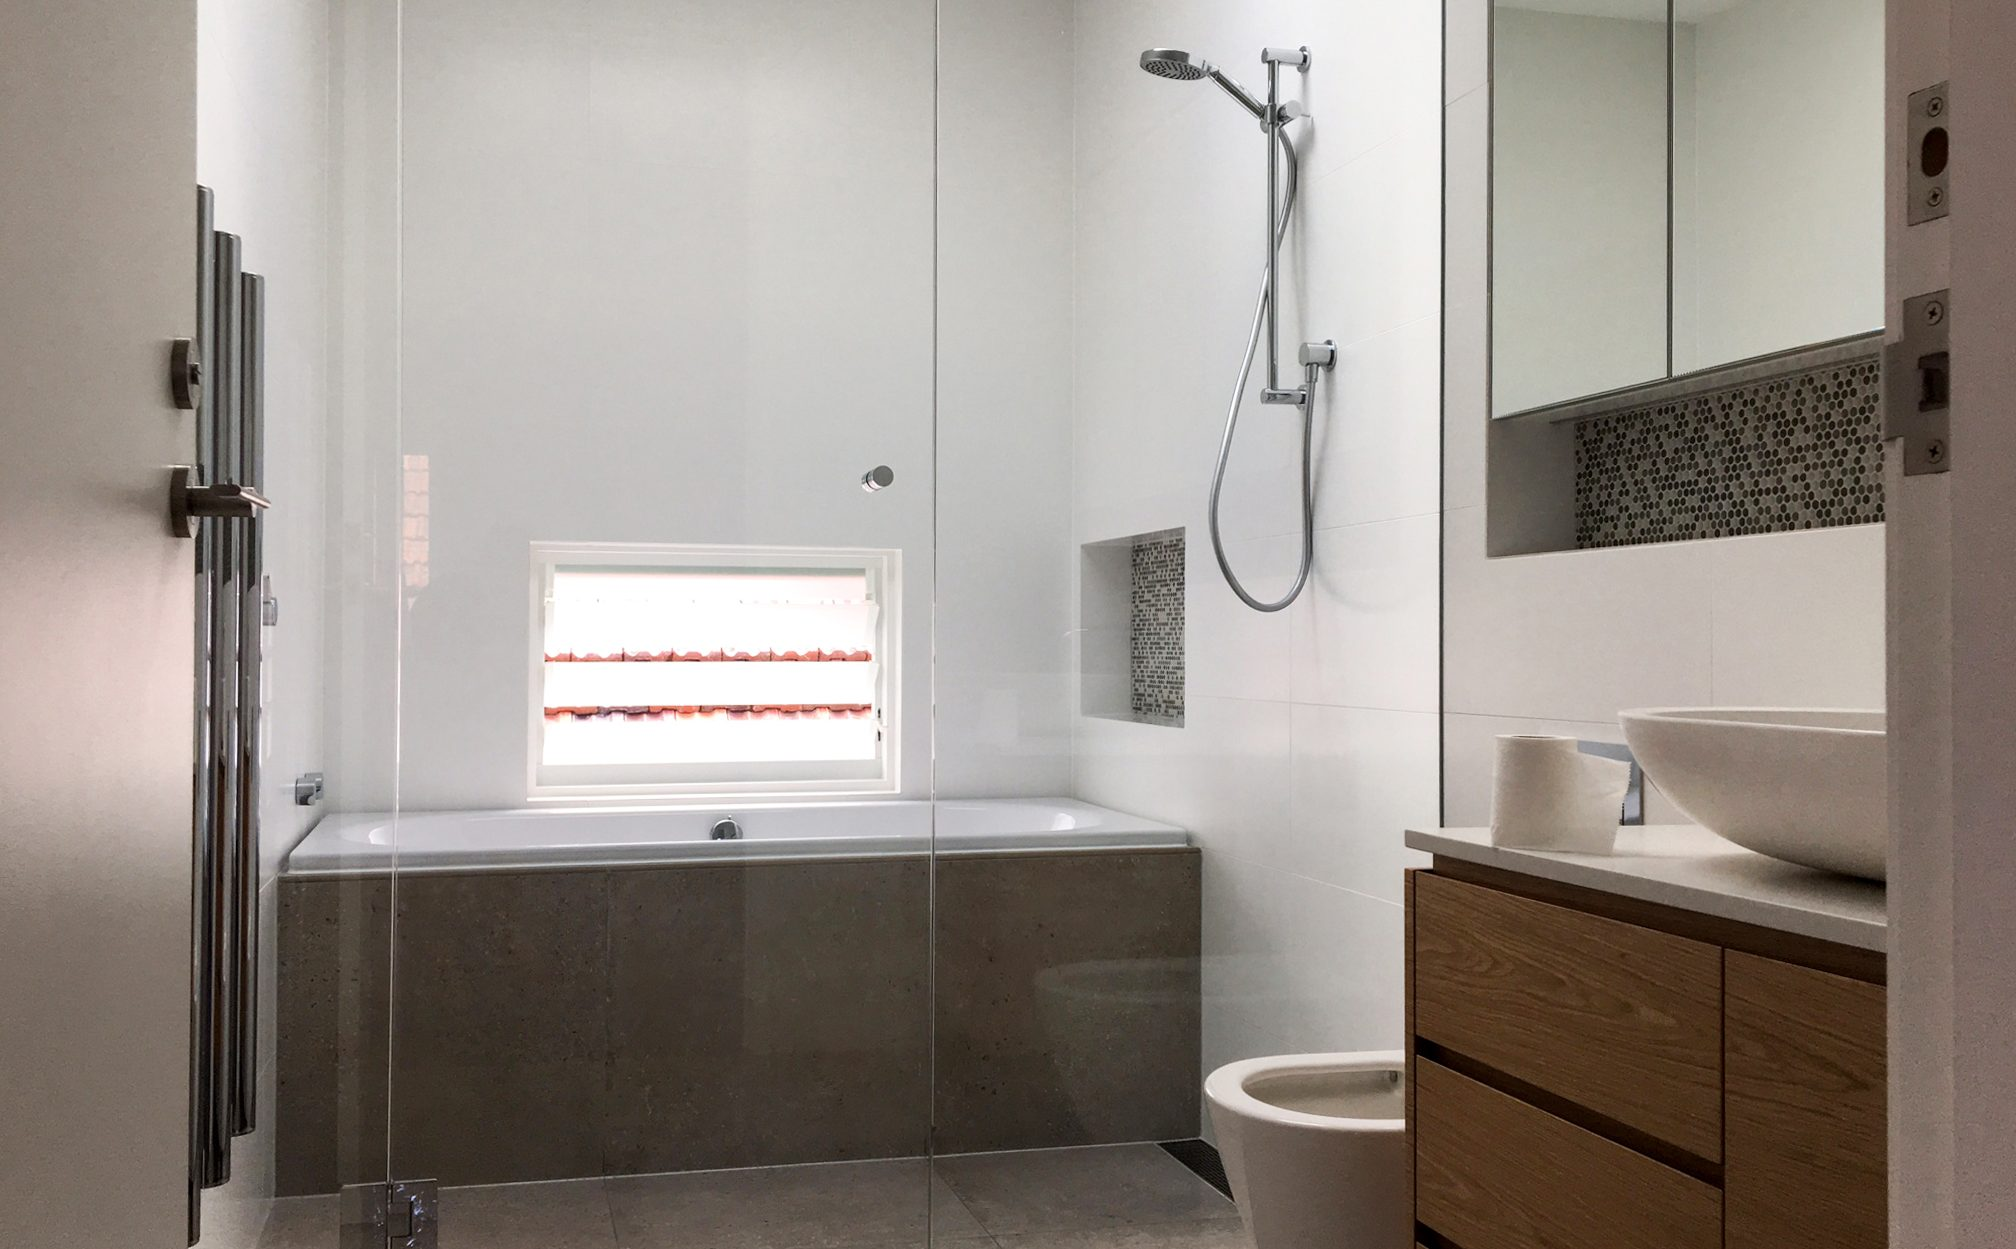 After Build Construction Cleaning | Sydney - ARC Services